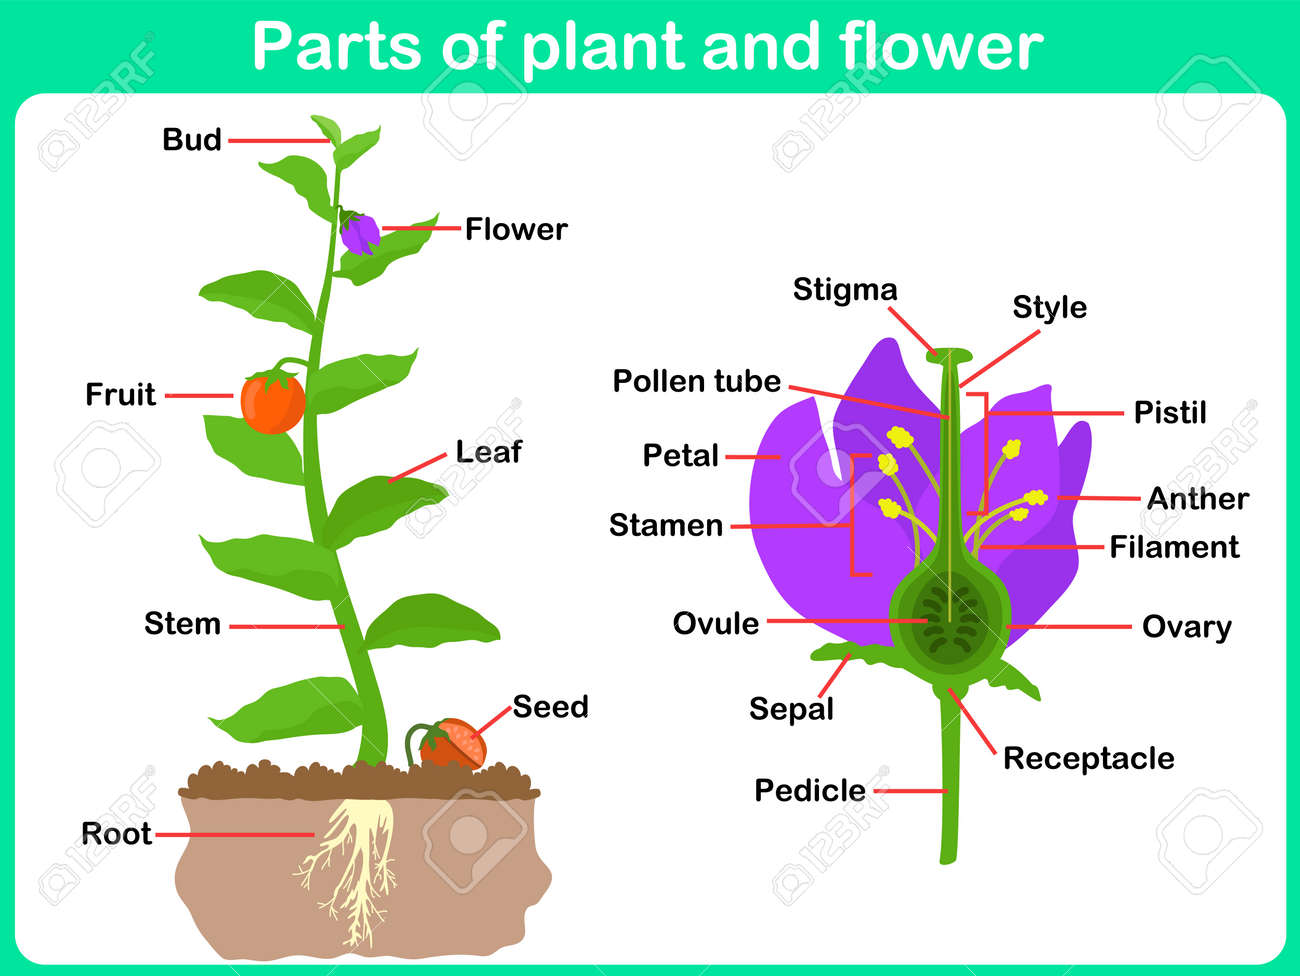 worksheet Parts Of The Flower Worksheet leaning parts of plant and flower for kids worksheet royalty stock vector 35185398